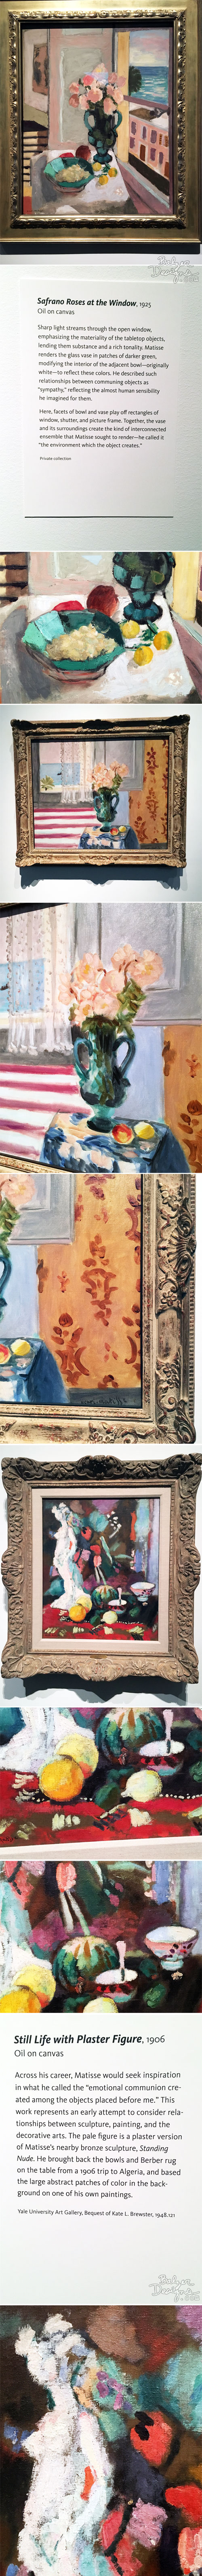 From the Balzer Designs Blog: Matisse in the Studio at the MFA